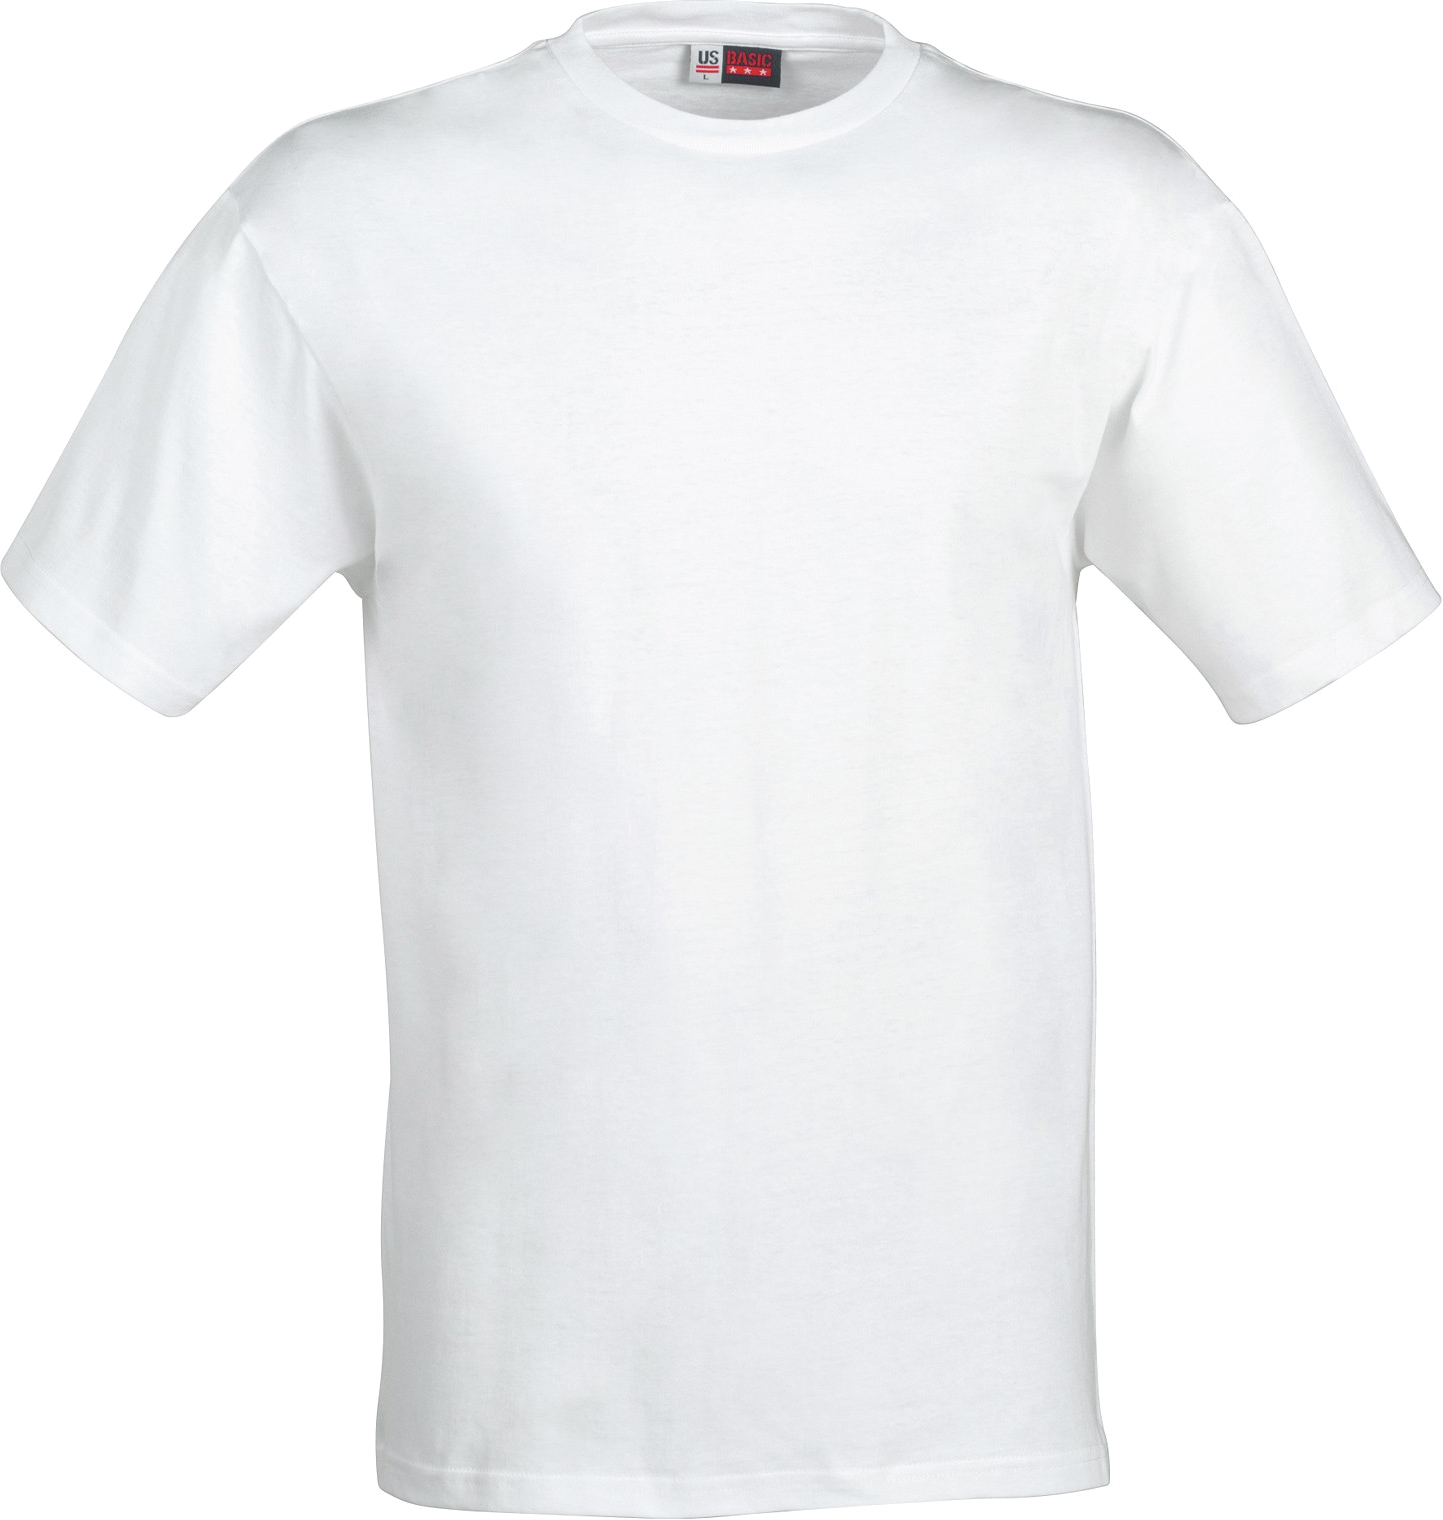 tshirts png images free download